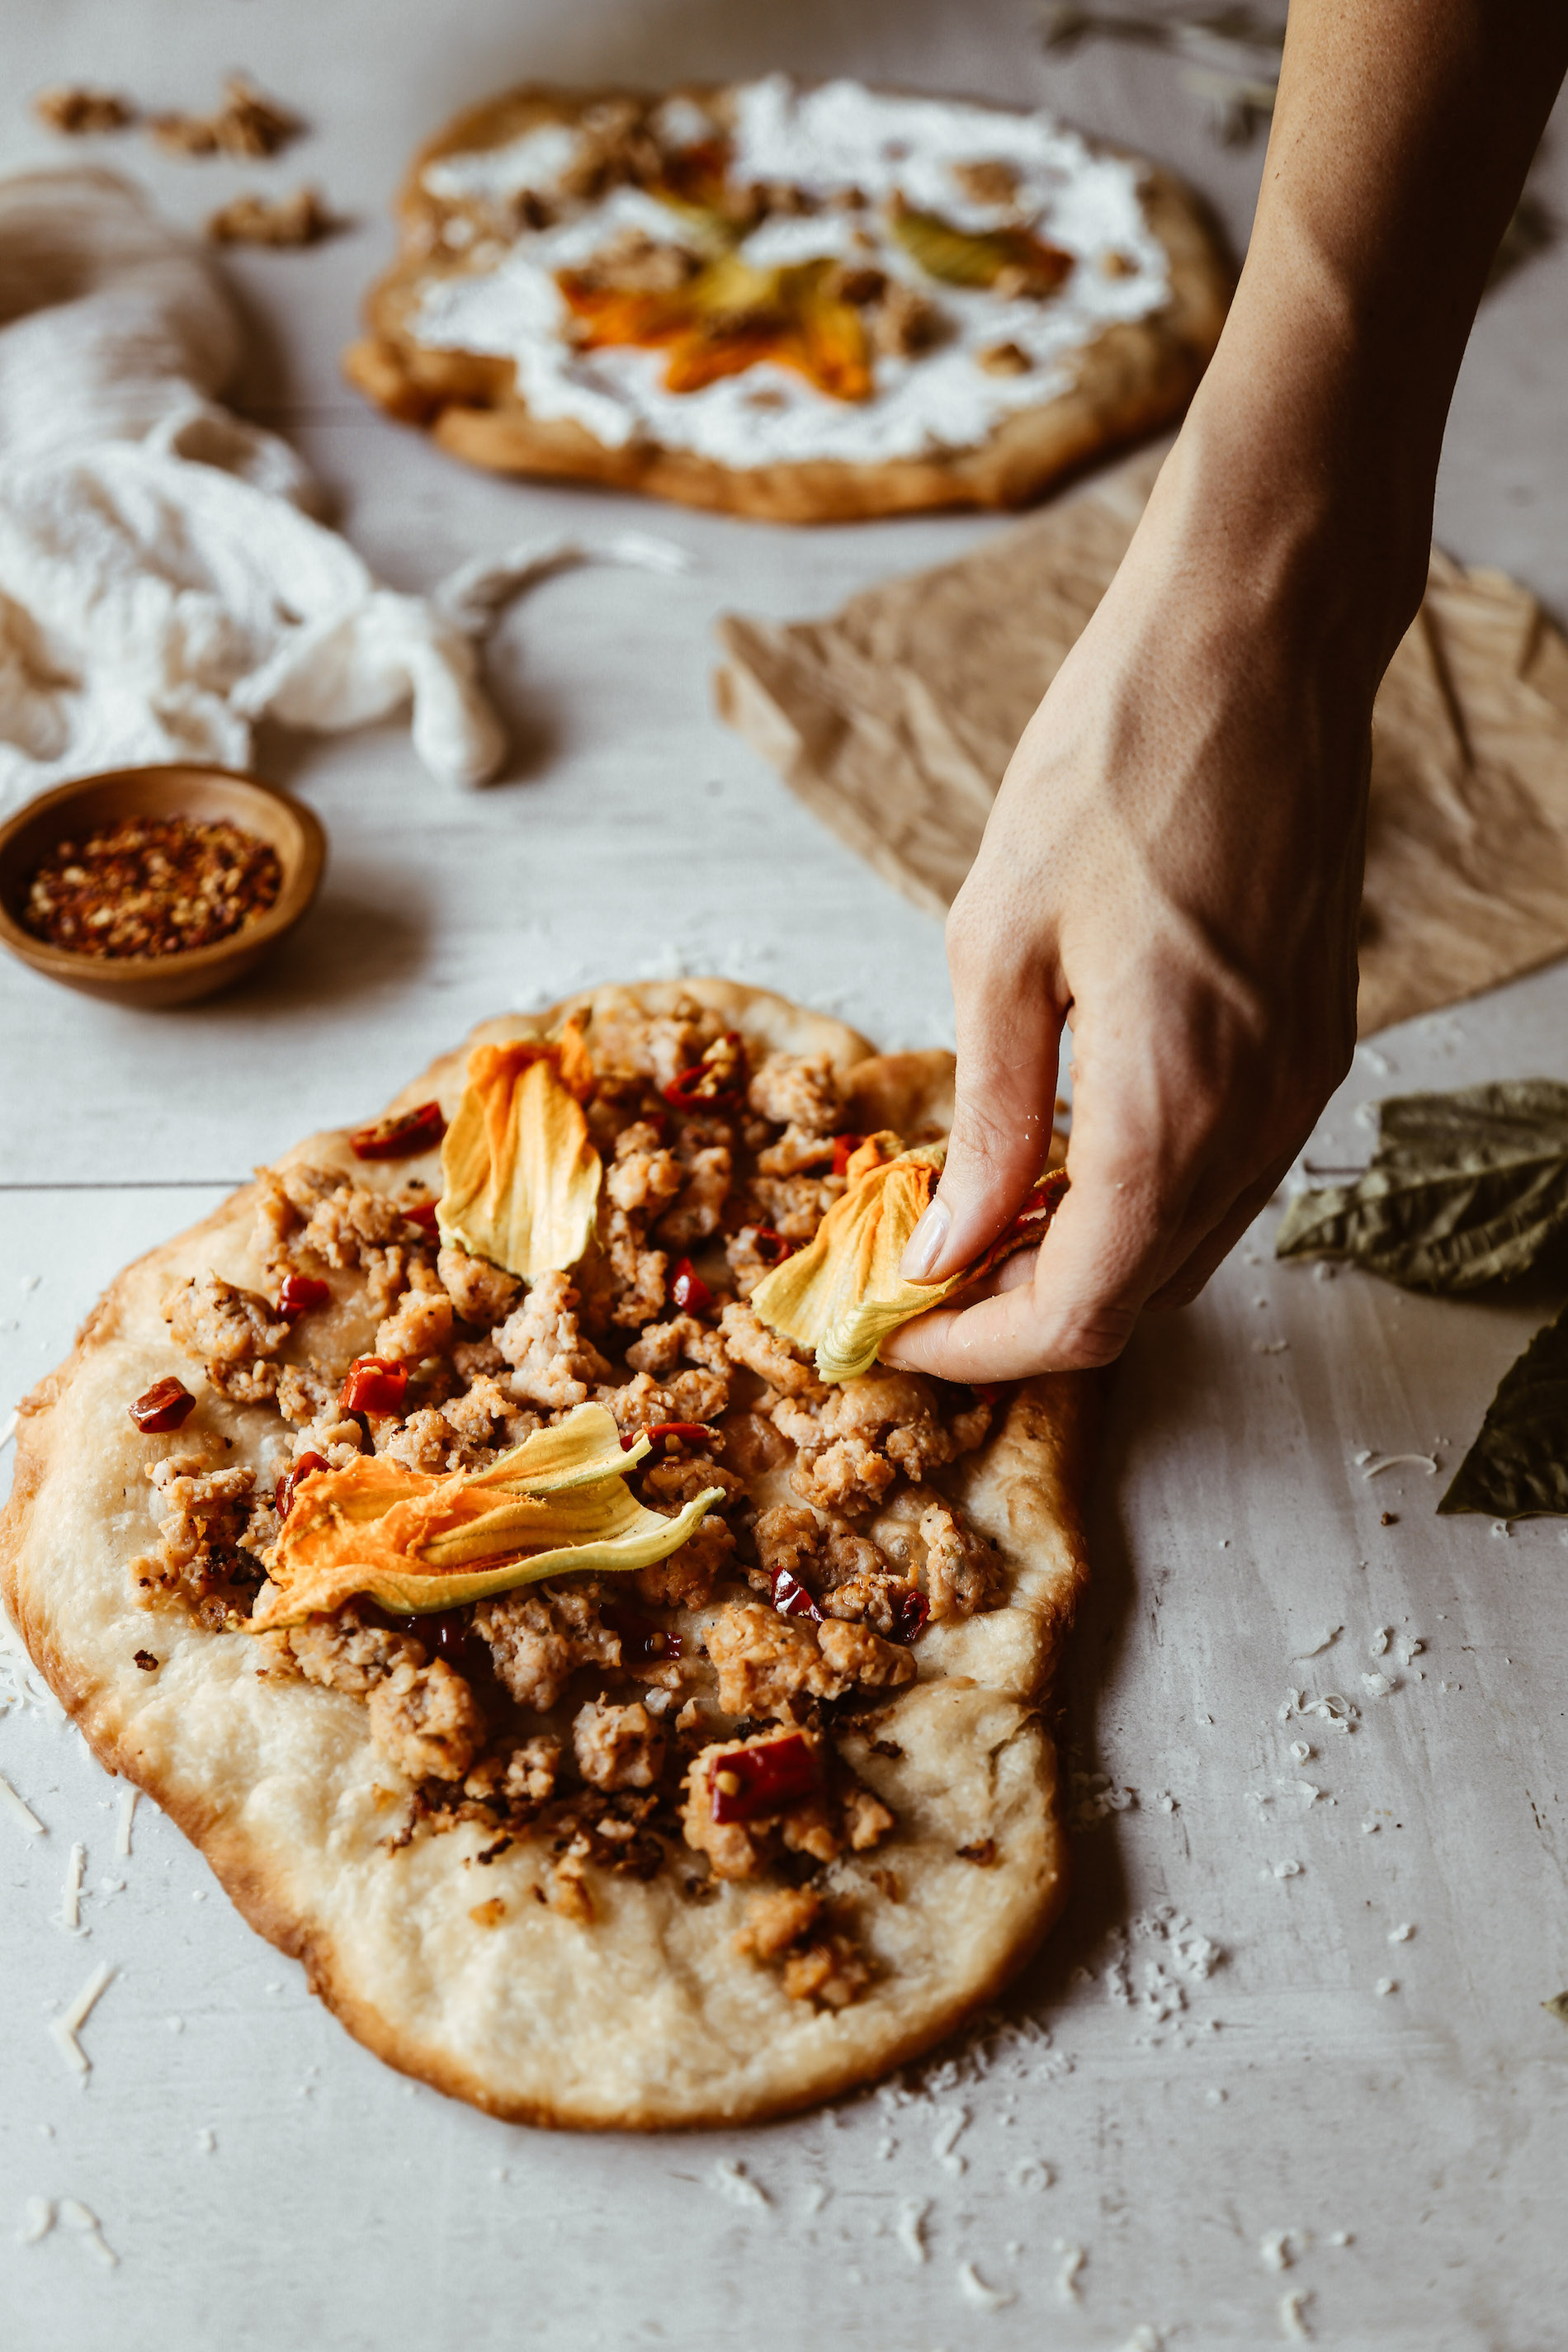 fried pizza with squash blossoms-6.jpg